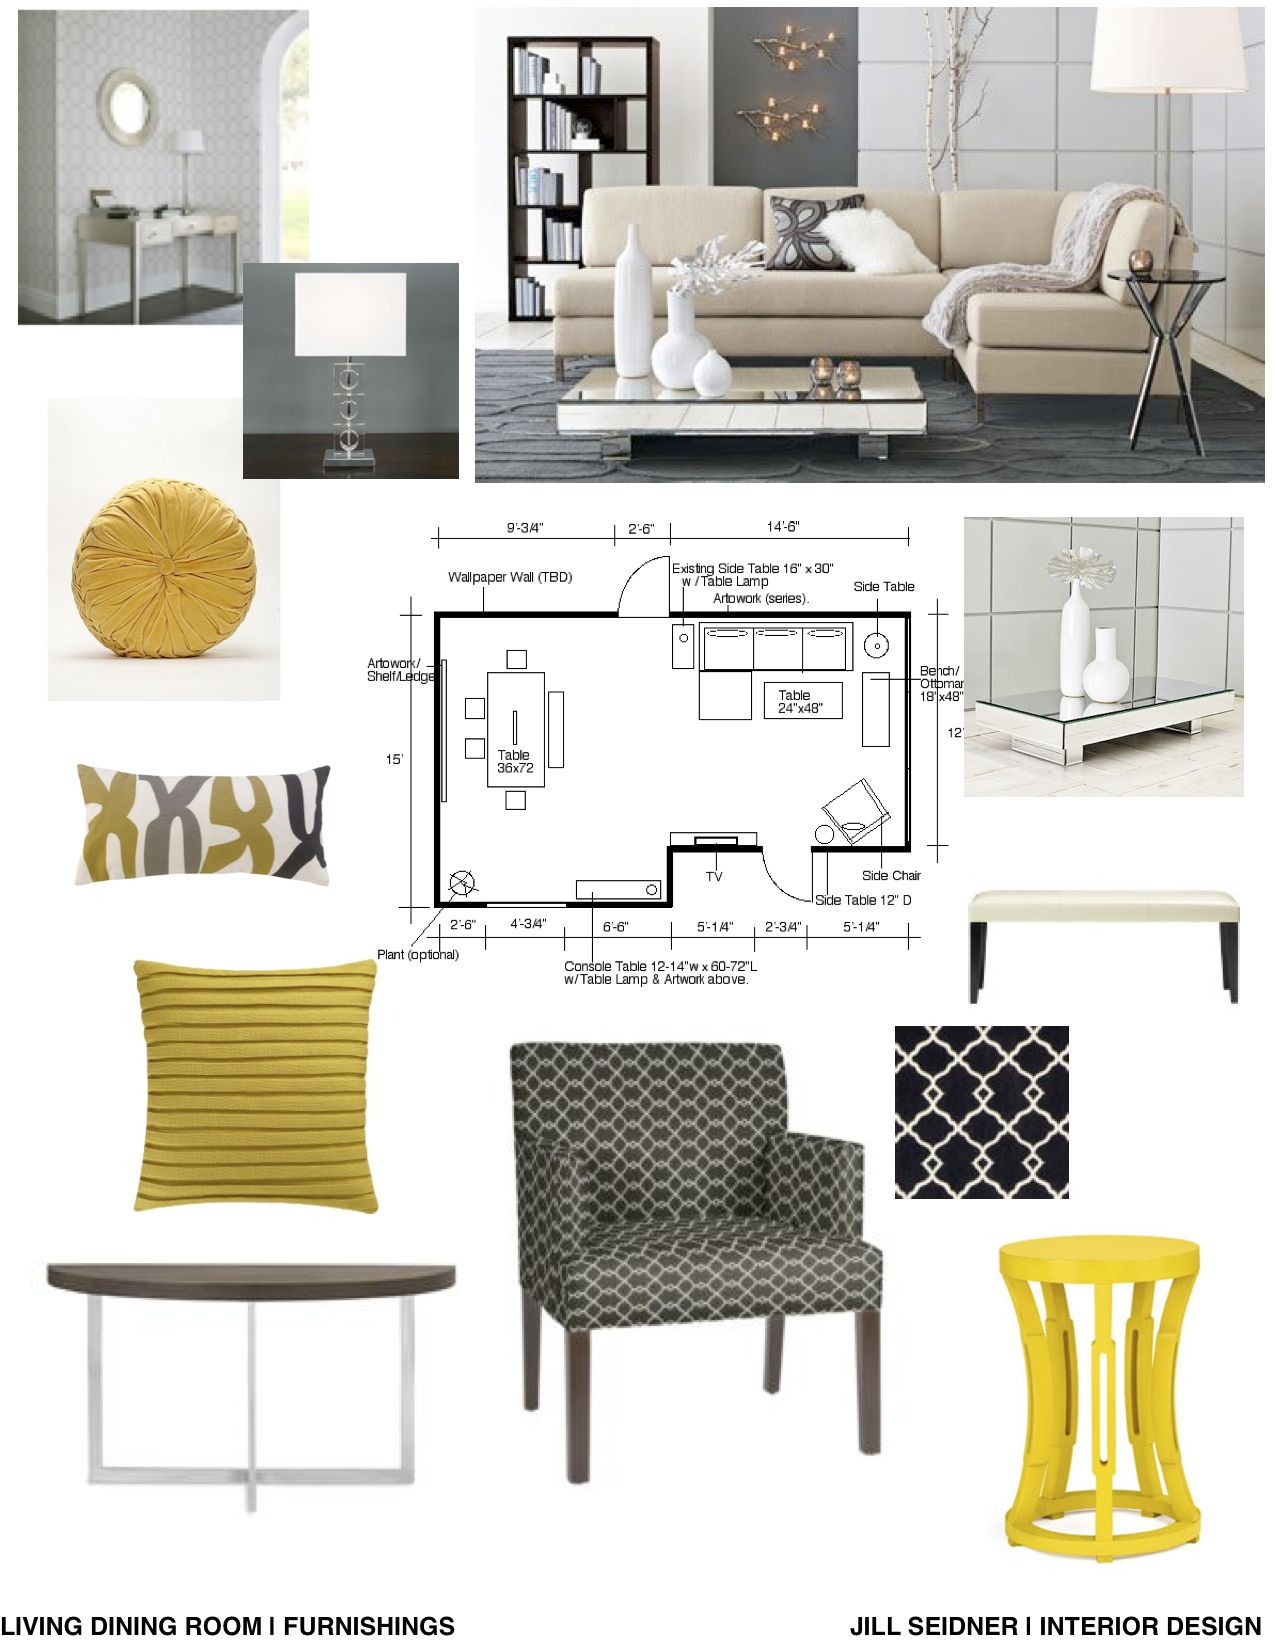 Concept board for an apartment living and dining room for Inneneinrichtung design studium